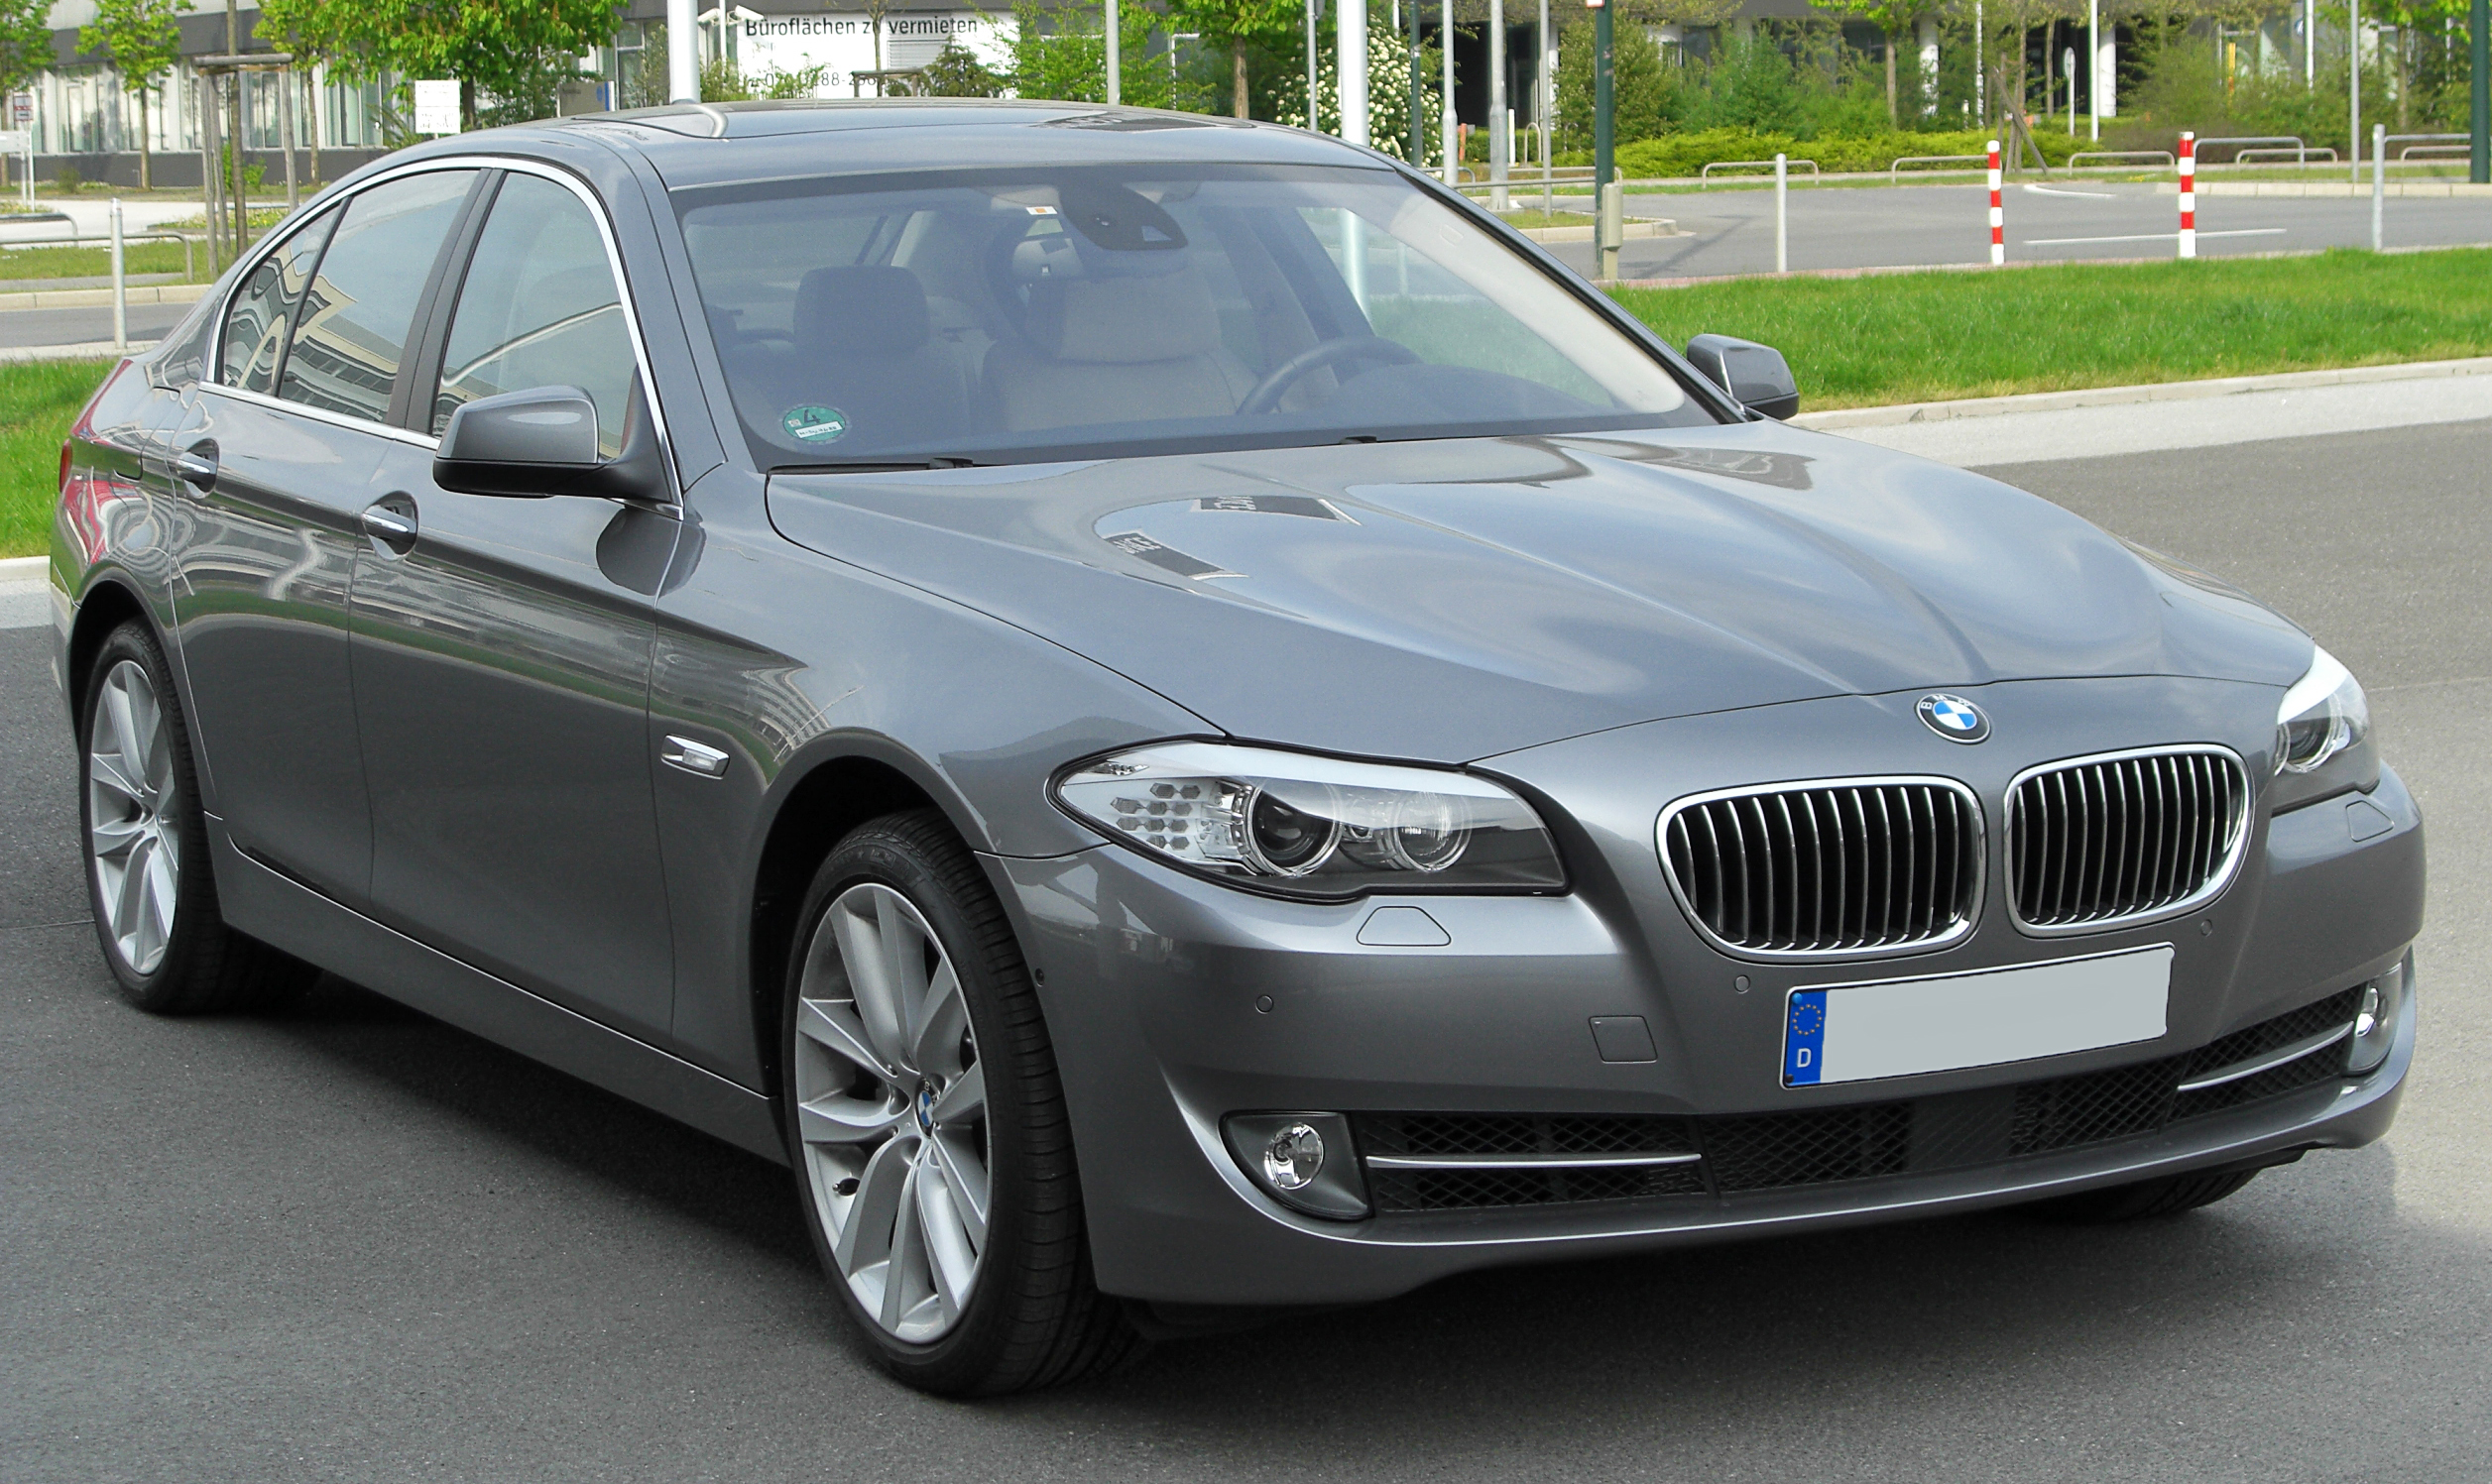 File Bmw 535i F10 Front 20100425 Jpg Wikimedia Commons